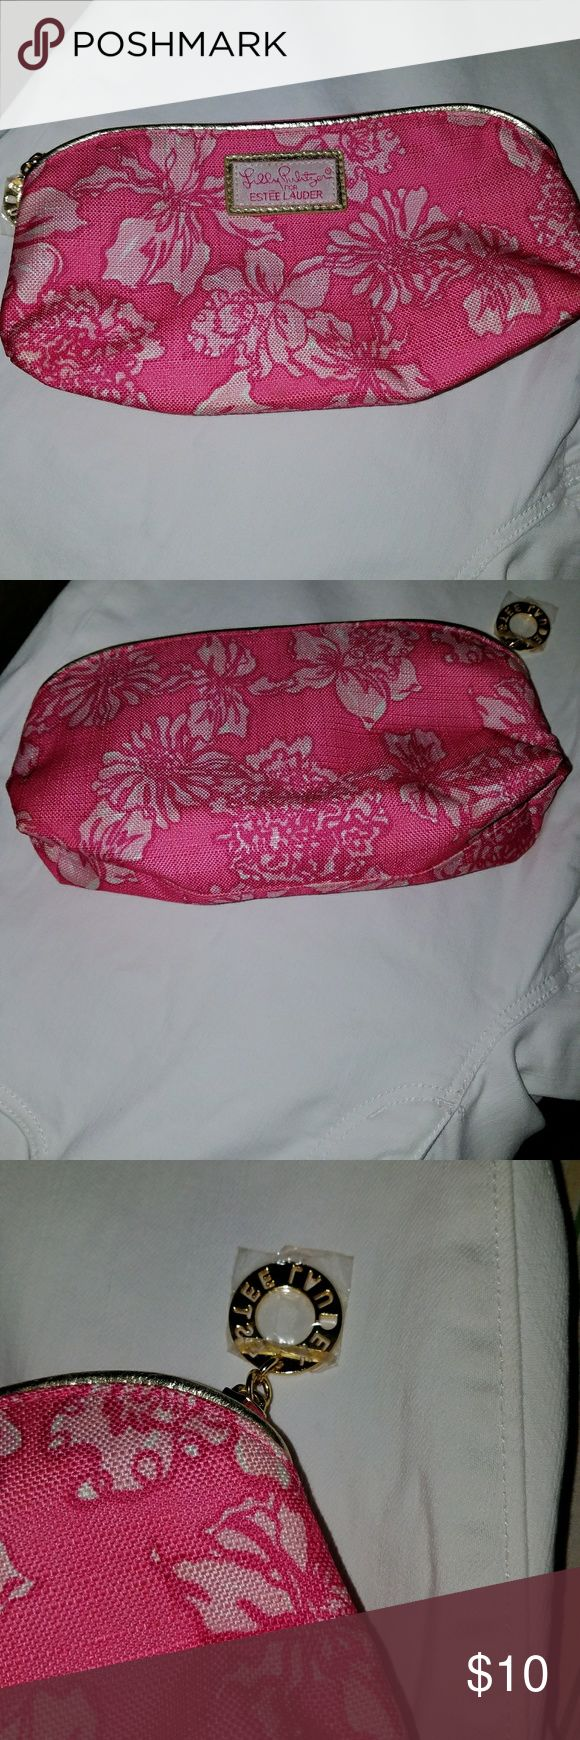 Brand New Lilly Pulitzer make up bag Brand New Lilly Pulitzer make up bag, Estau Lauder Lilly Pulitzer Bags Cosmetic Bags & Cases